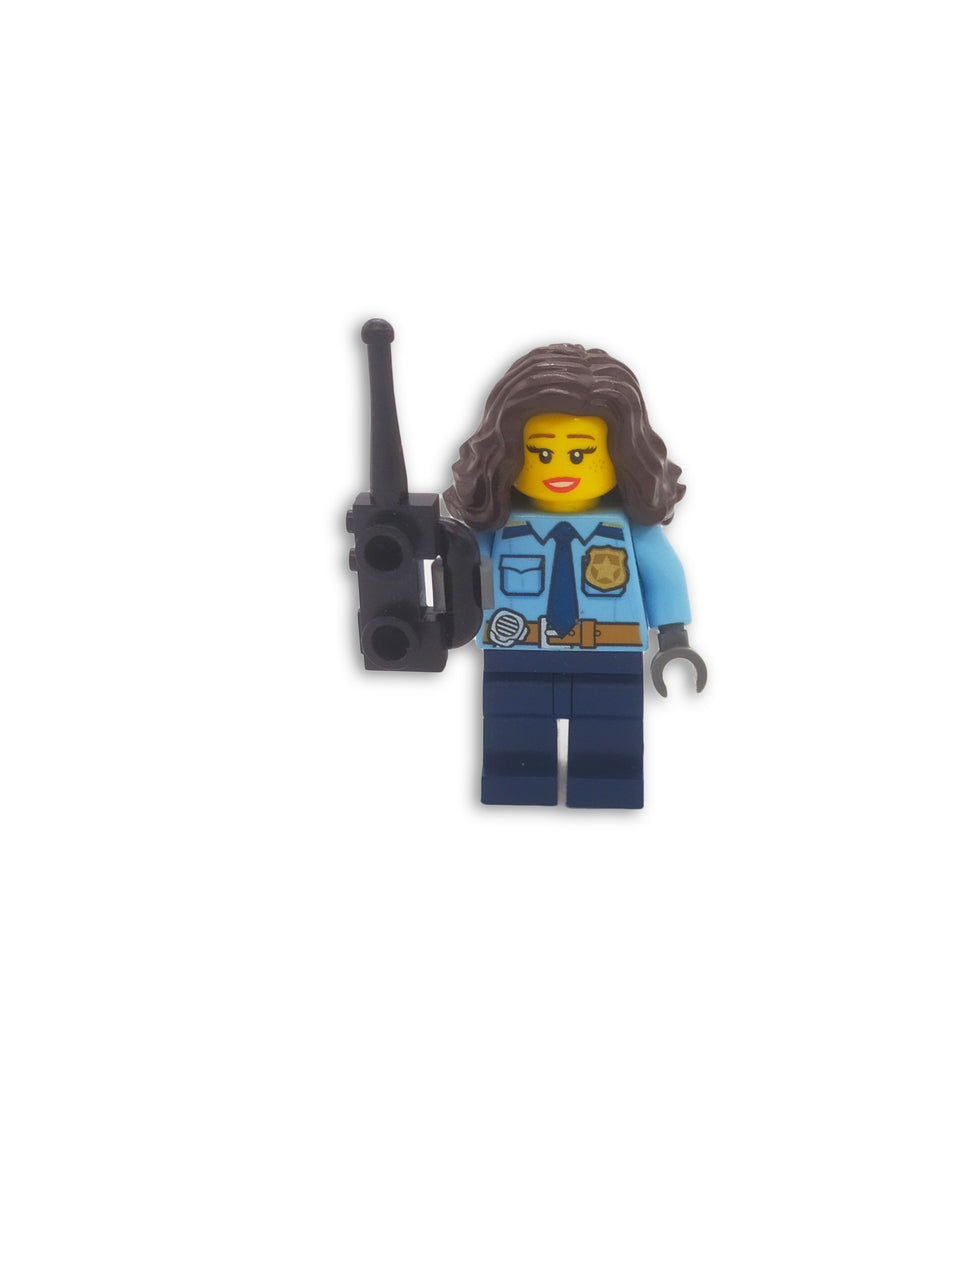 Lego Policewoman with accessories